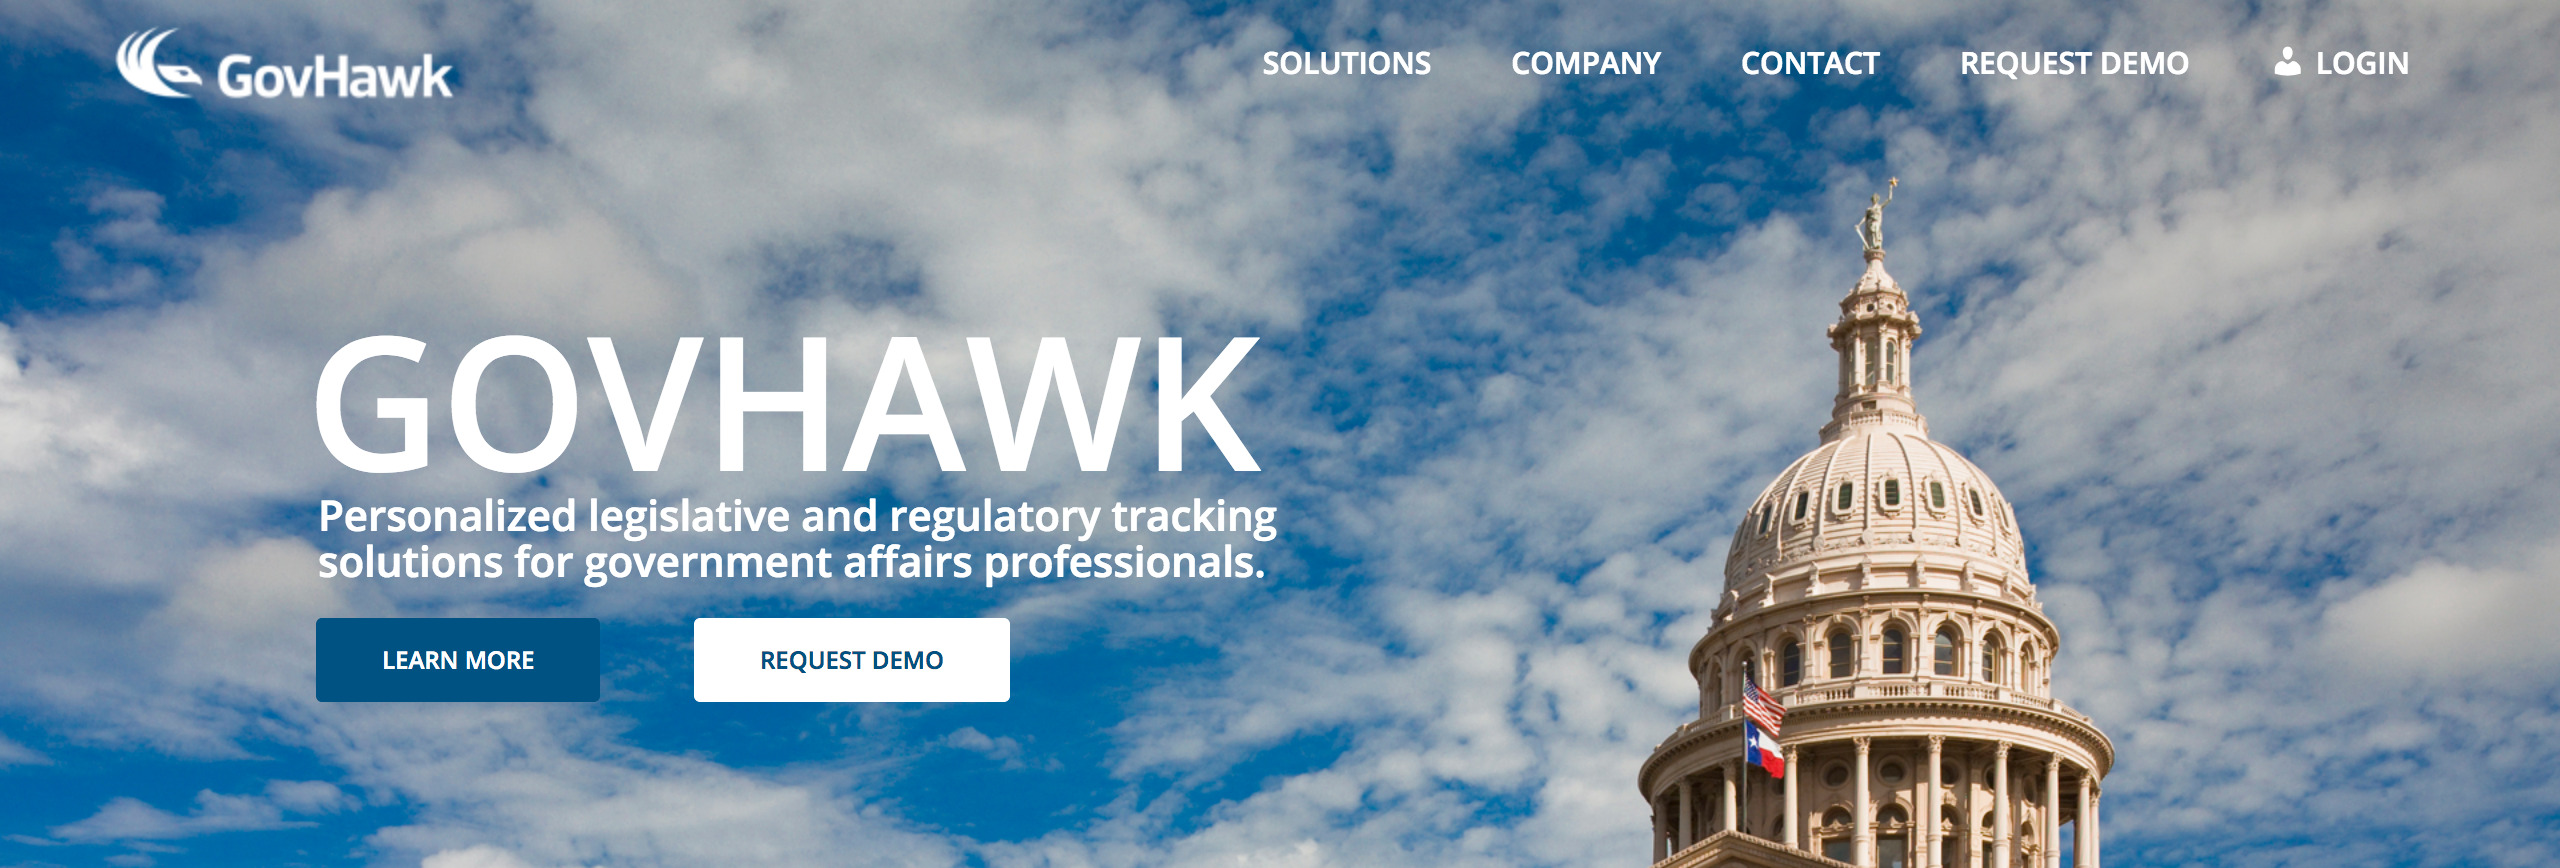 Screenshot_2020-06-23 GovHawk Legislative Regulatory Tracking